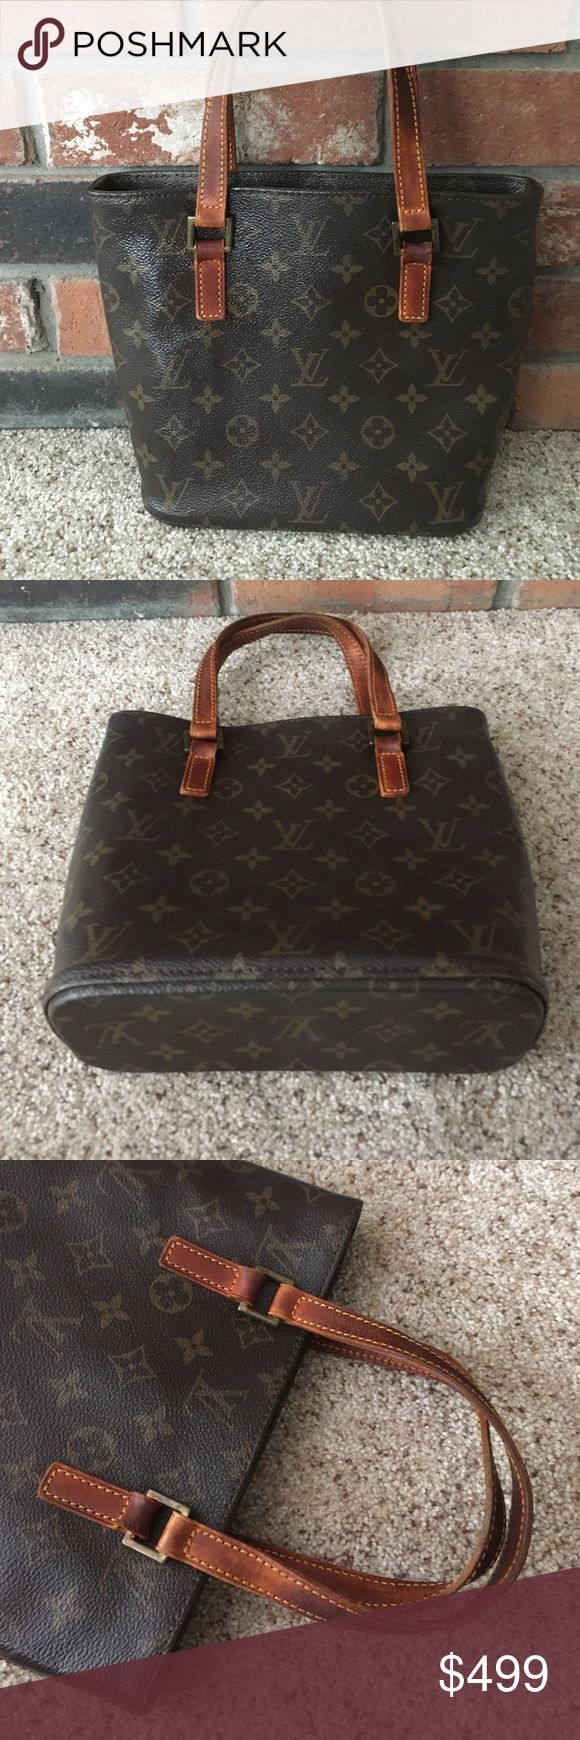 LV TOTE Beautiful Louis Vuitton signature monogram brown and tan with patina on the leather handles bag is in perfect condition no scuffs on corners interior is clean Louis Vuitton Bags Totes